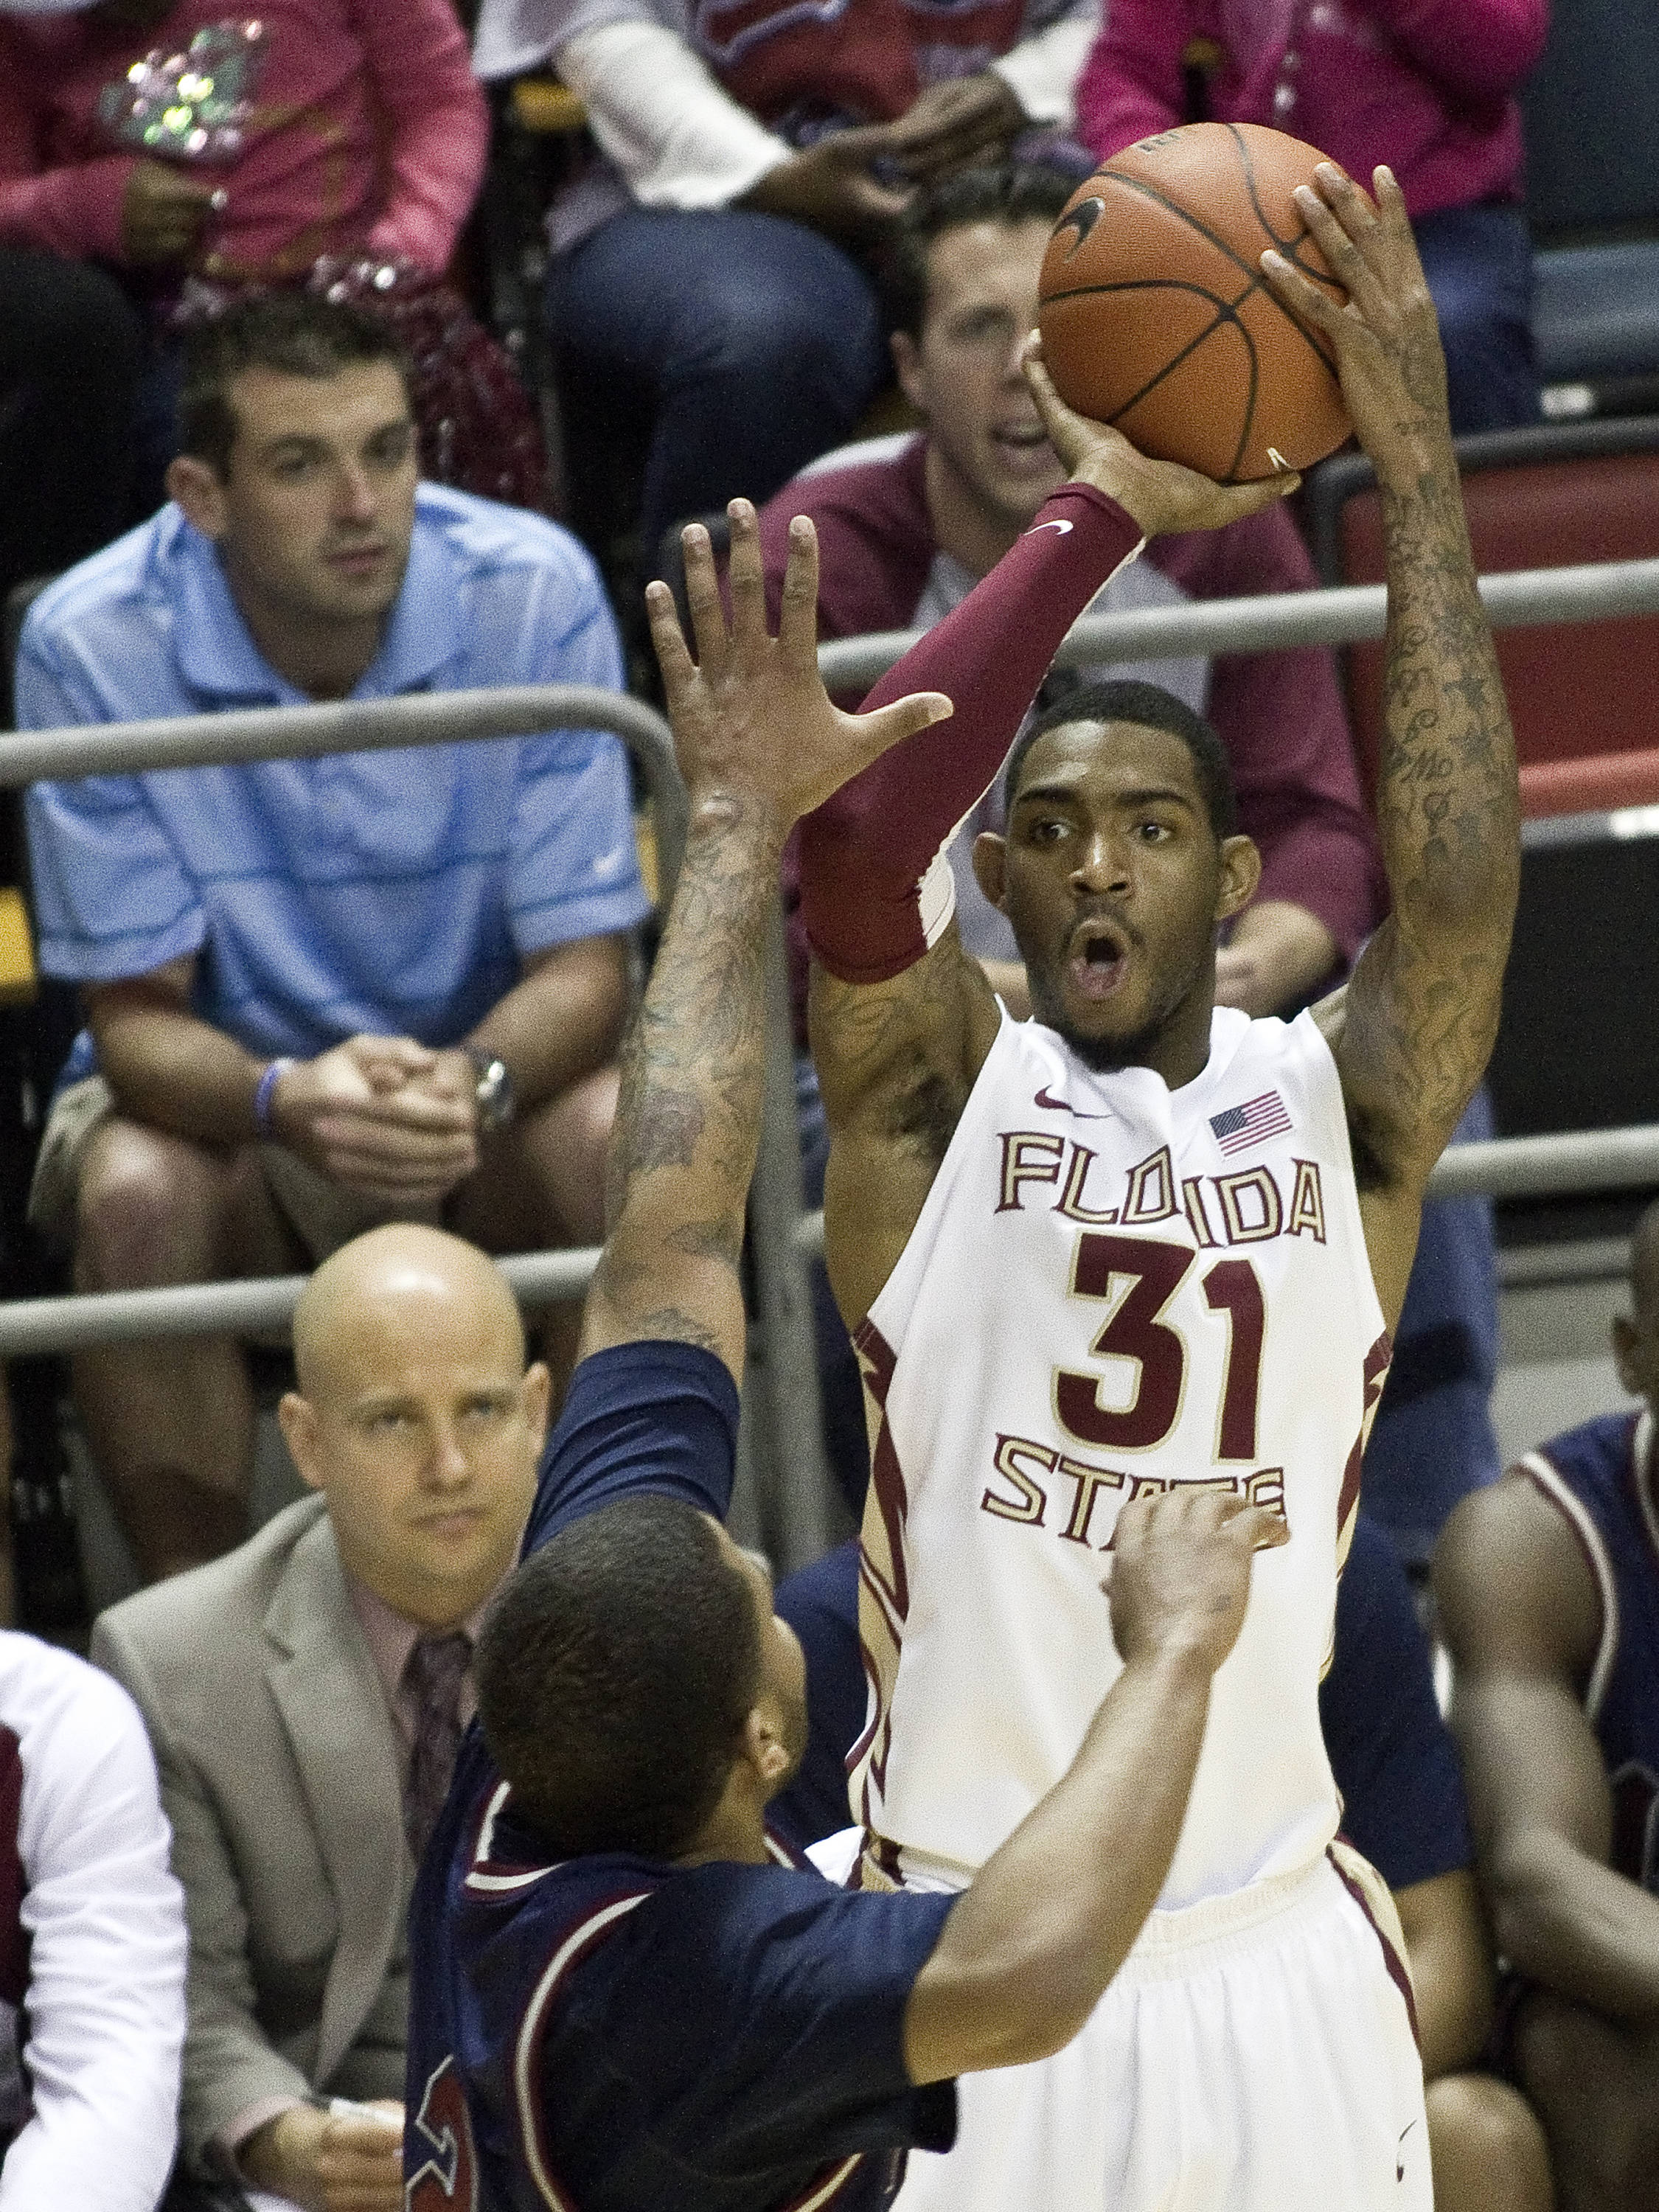 Terry Whisnant (31), FSU vs Loyola-Mary., 12/18/2011